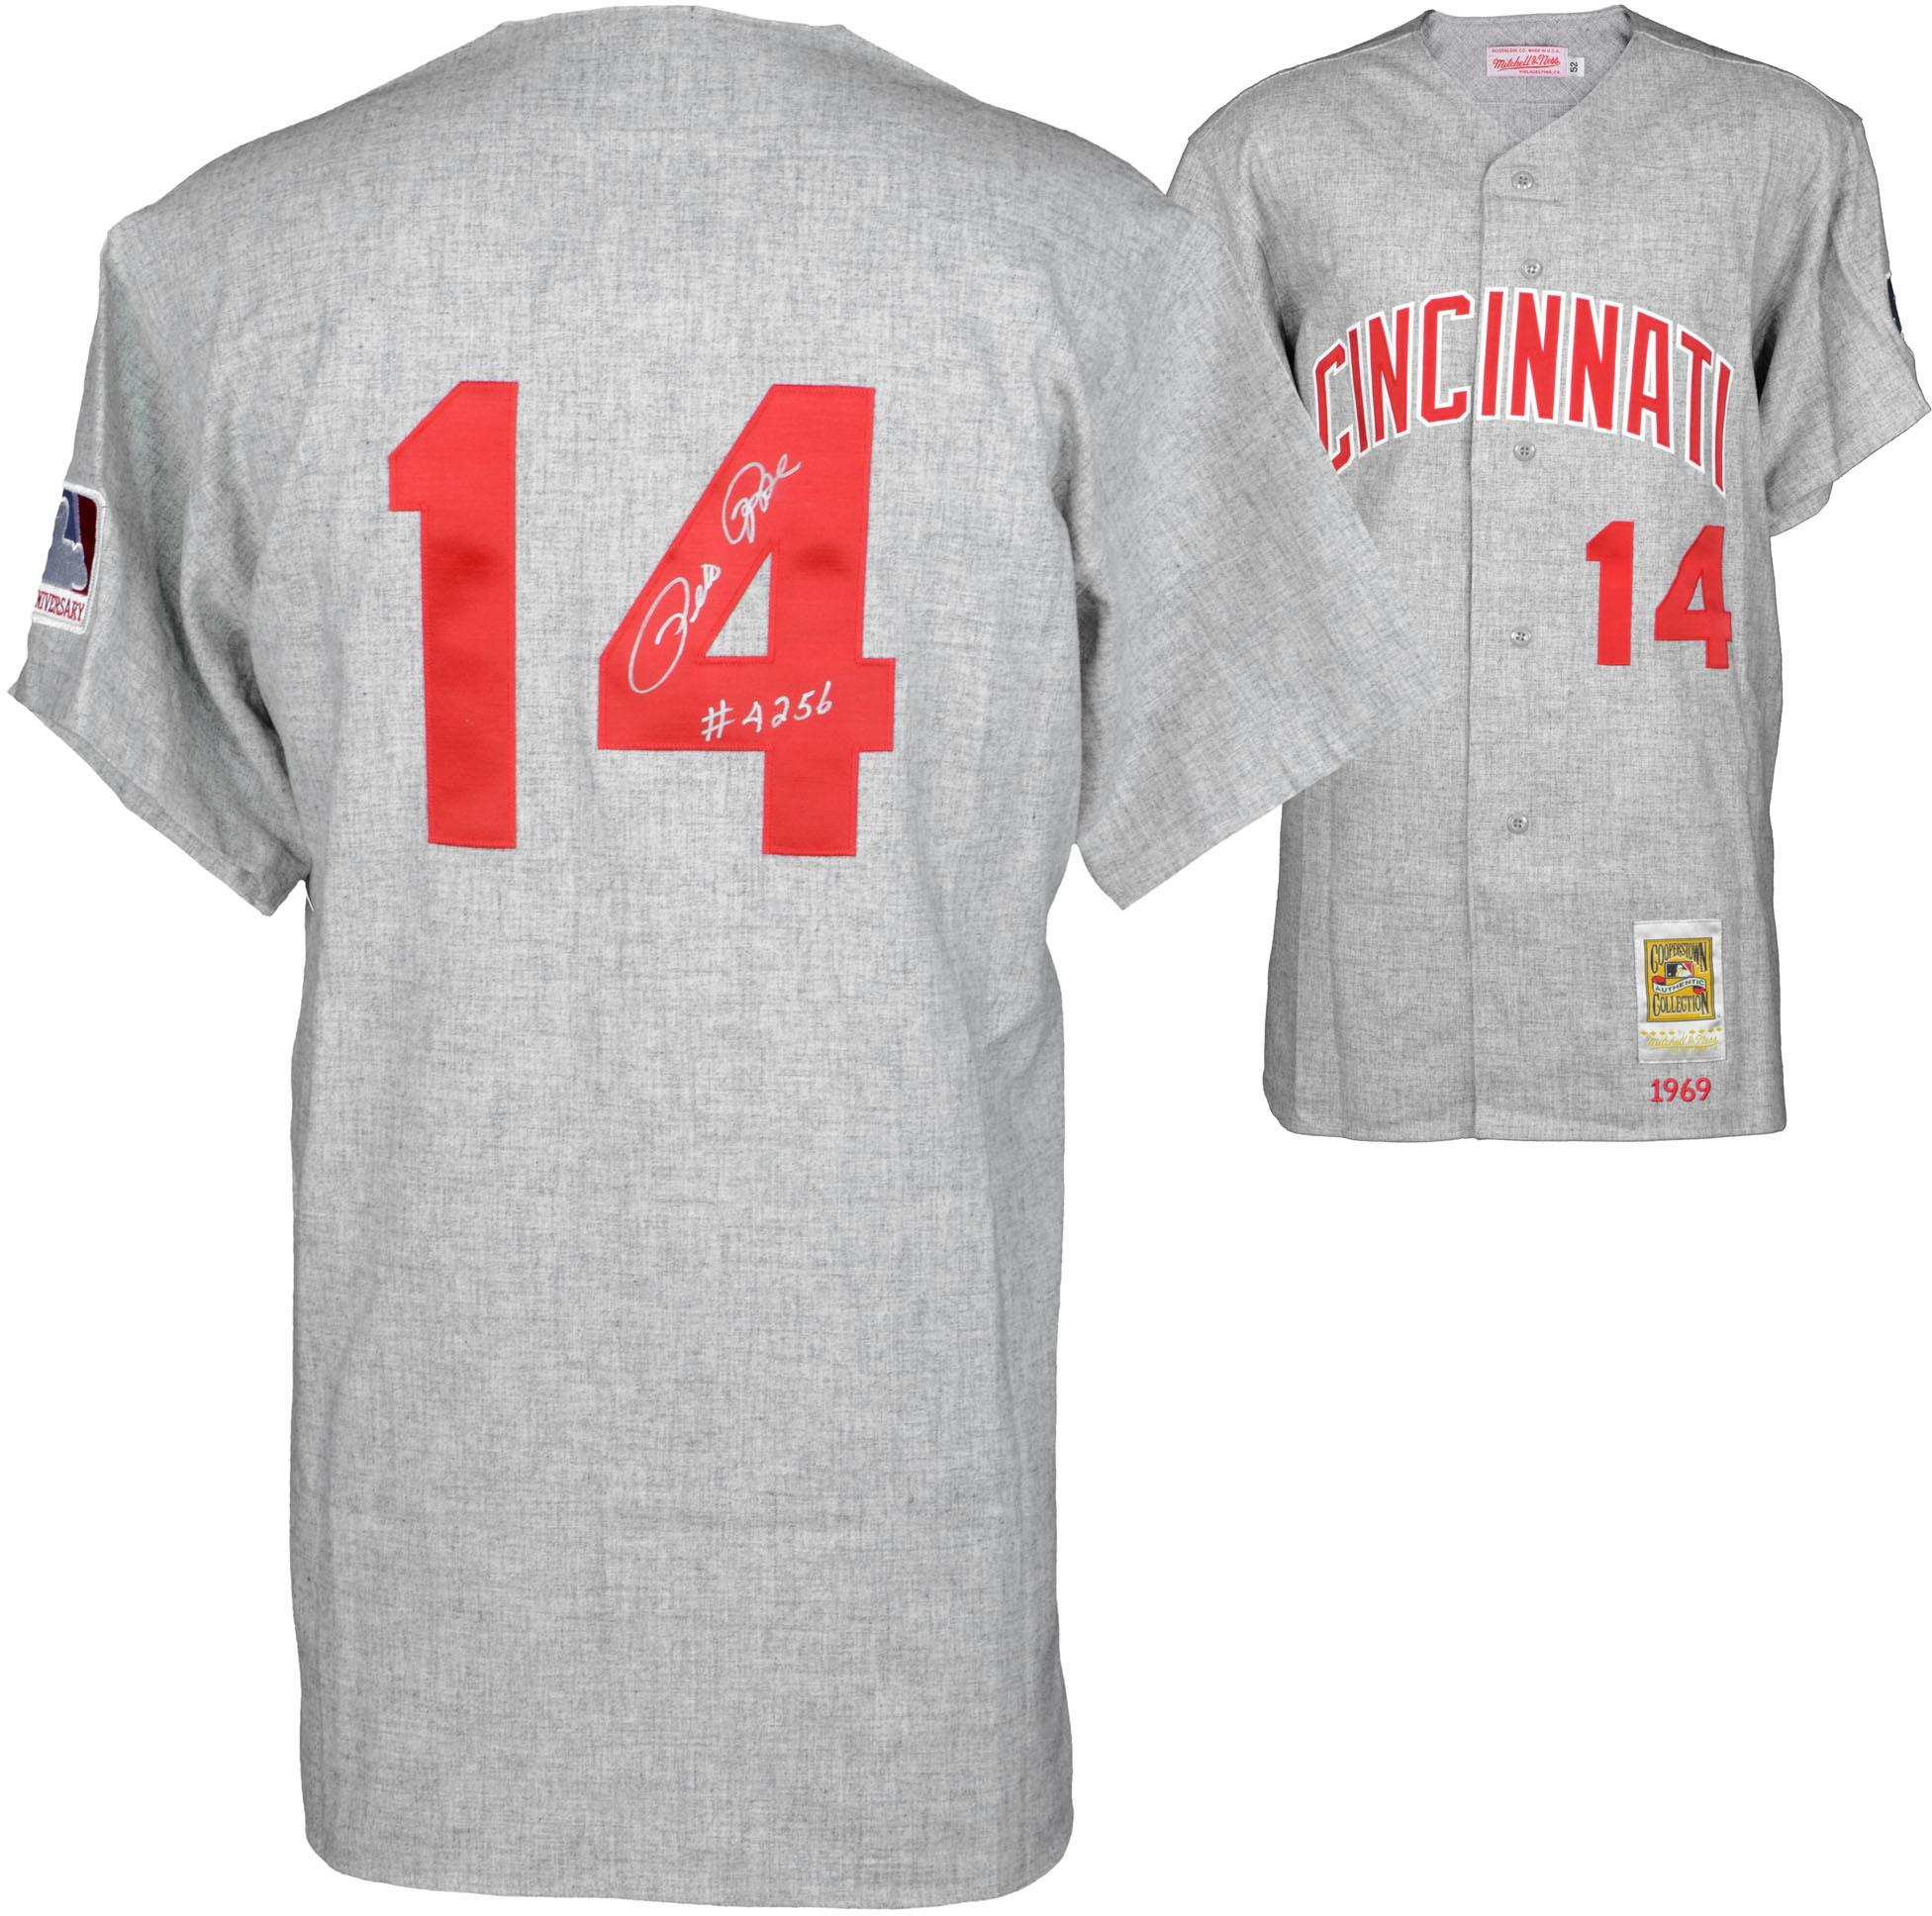 Pete Rose Cincinnati Reds Autographed 1969 Mitchell & Ness Gray Jersey with 4256 Inscription - Fanatics Authentic Certified